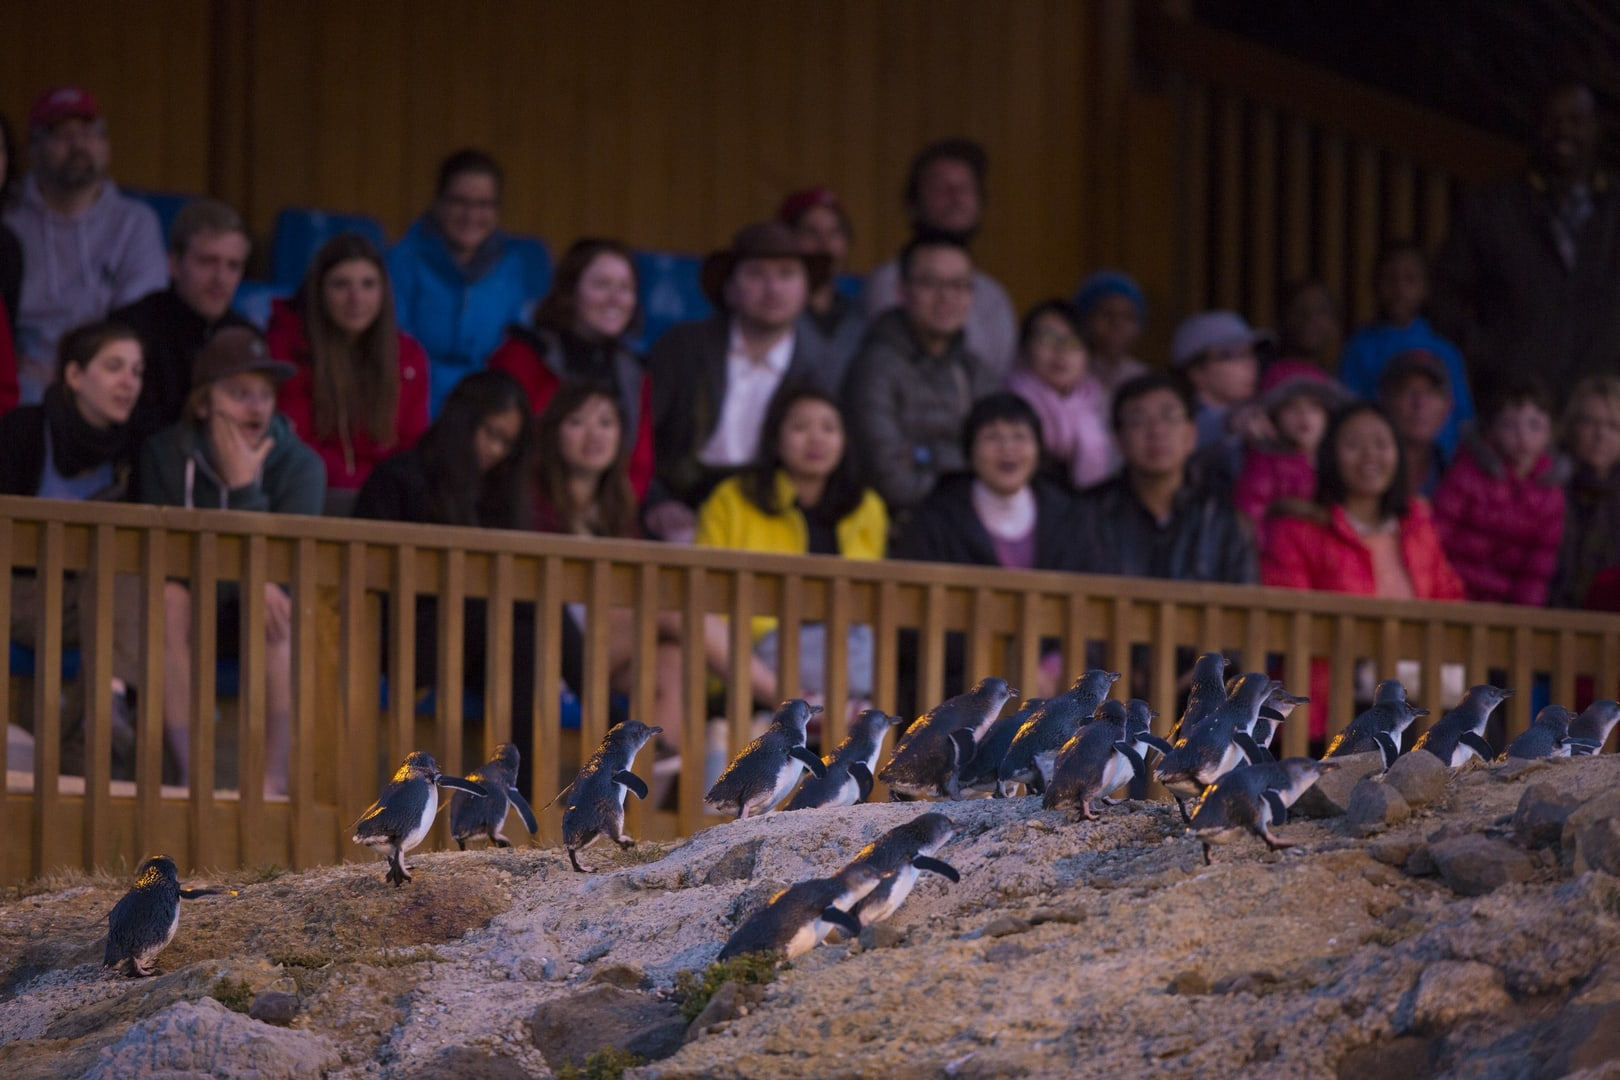 blue penguins, the smallest penguins in the world, waddle over rocks at night